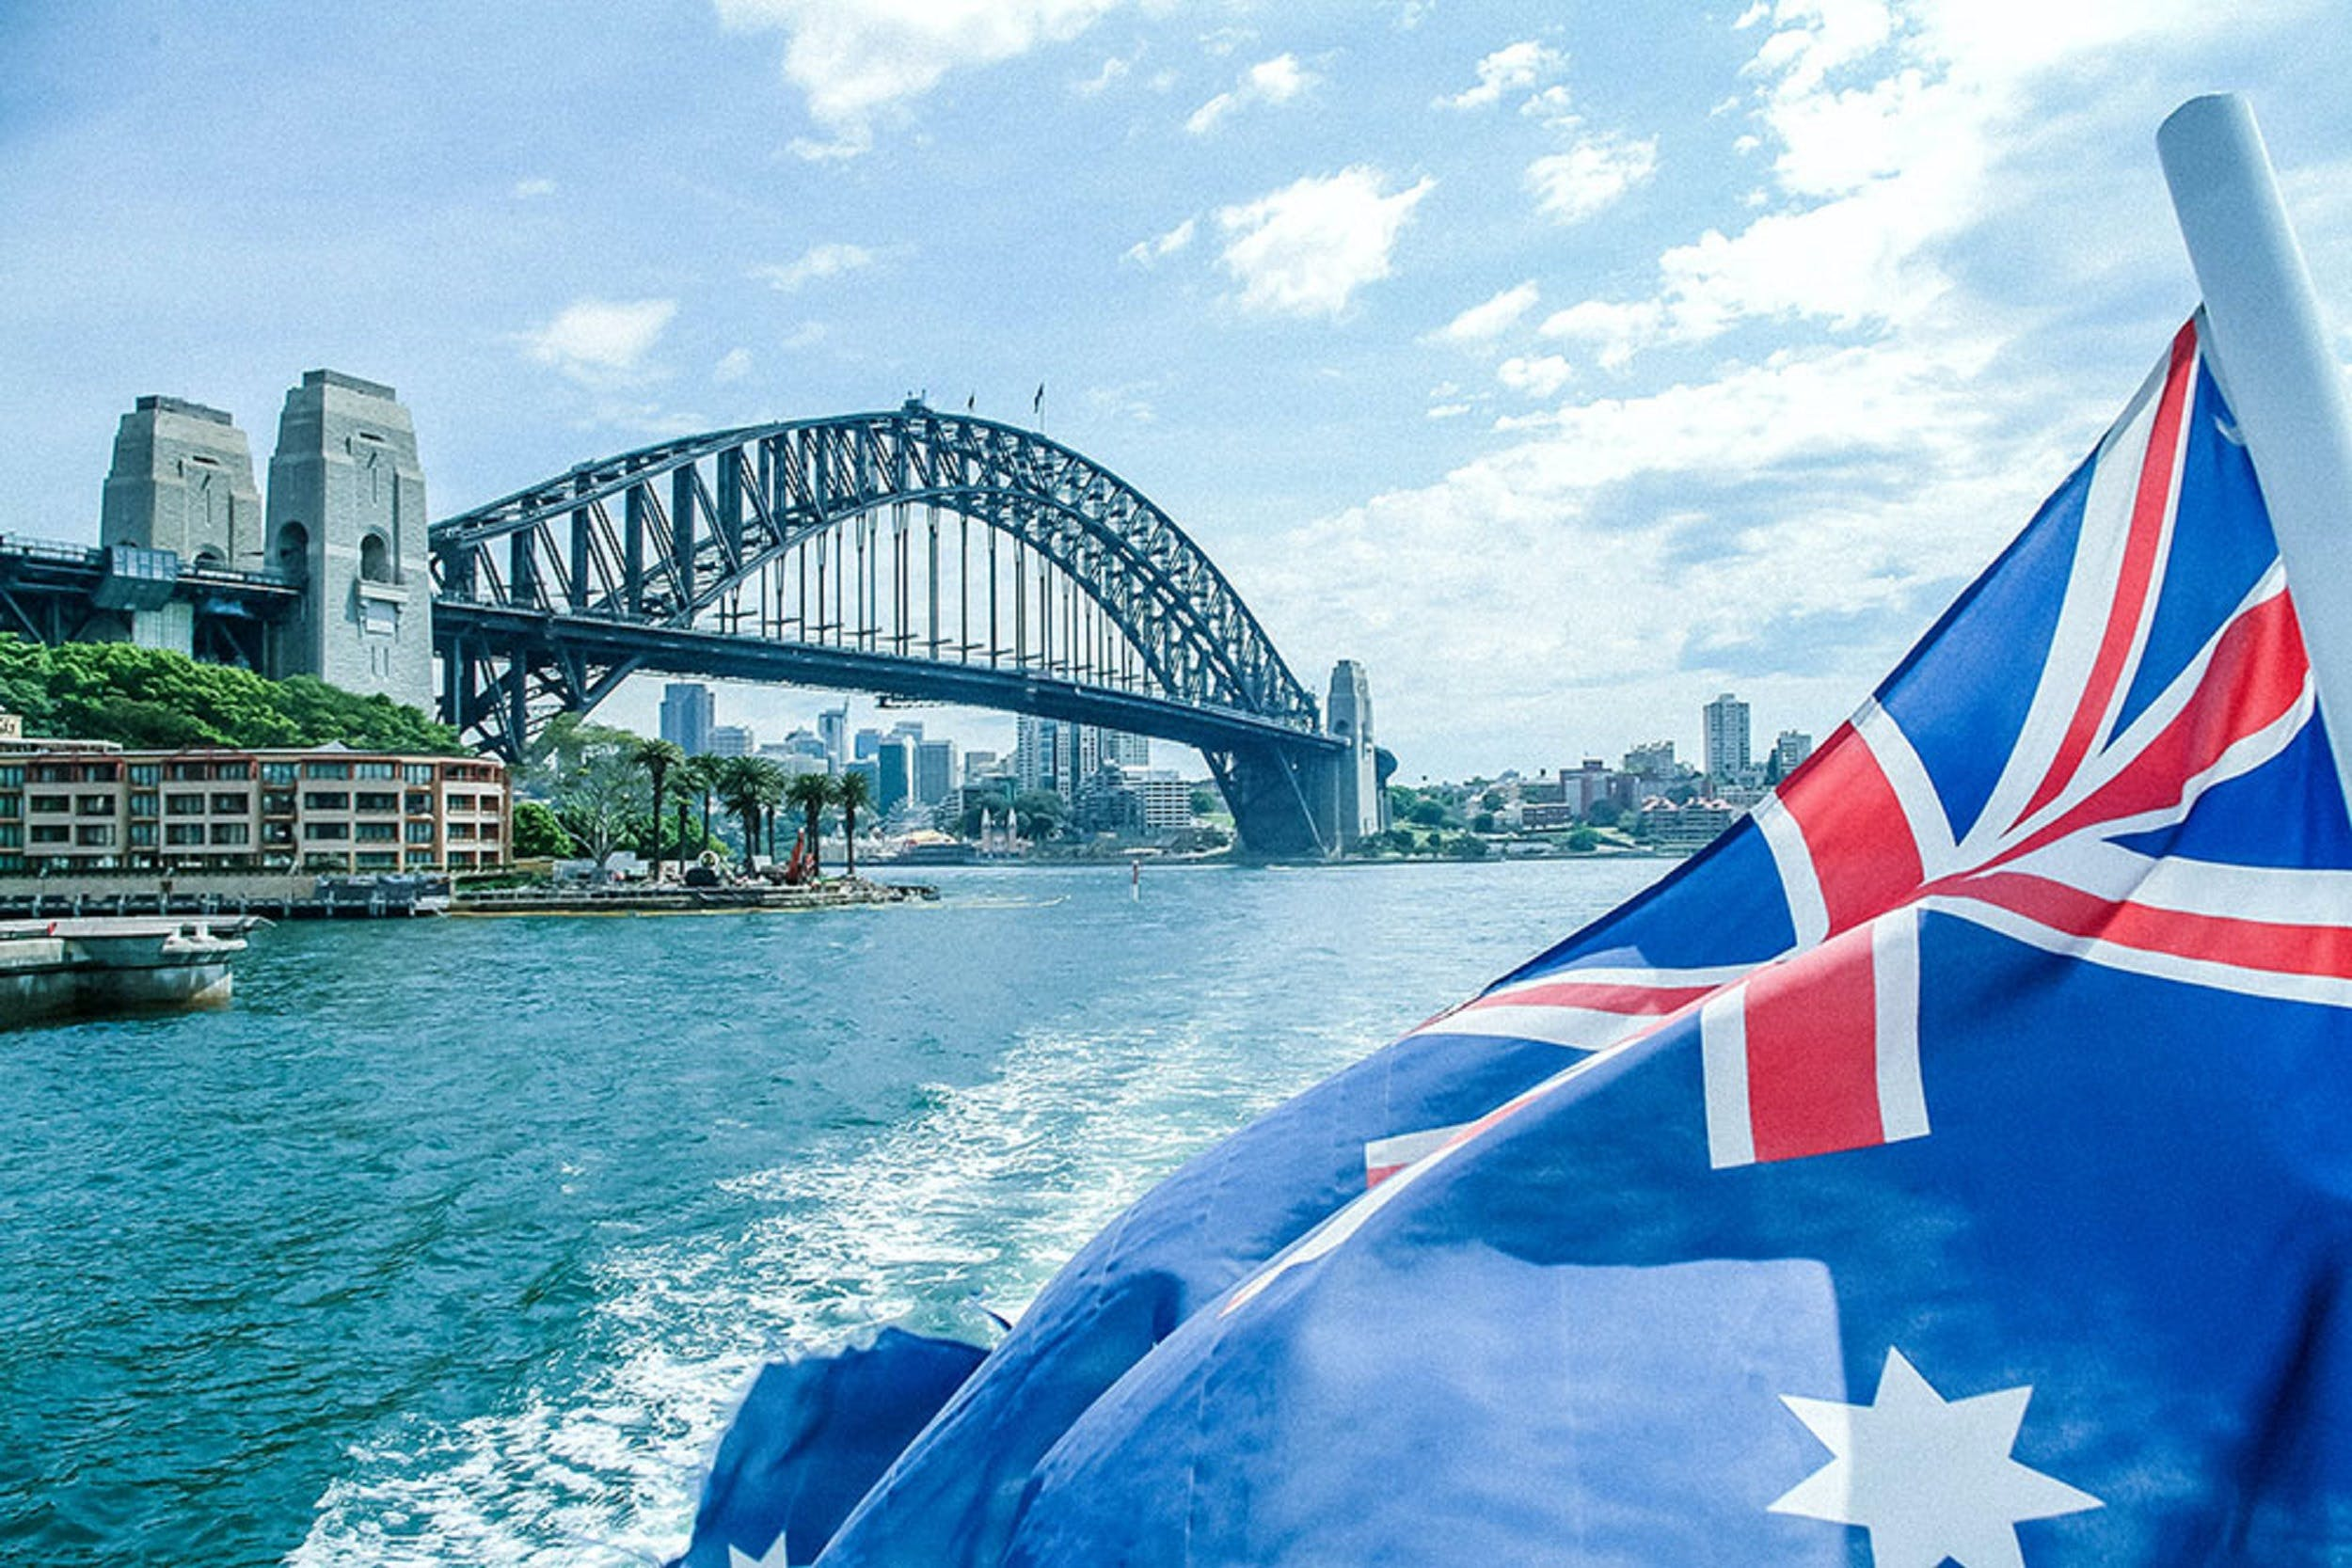 Australia Day Lunch and Dinner Cruises On Sydney Harbour with Sydney Showboats - Pubs and Clubs